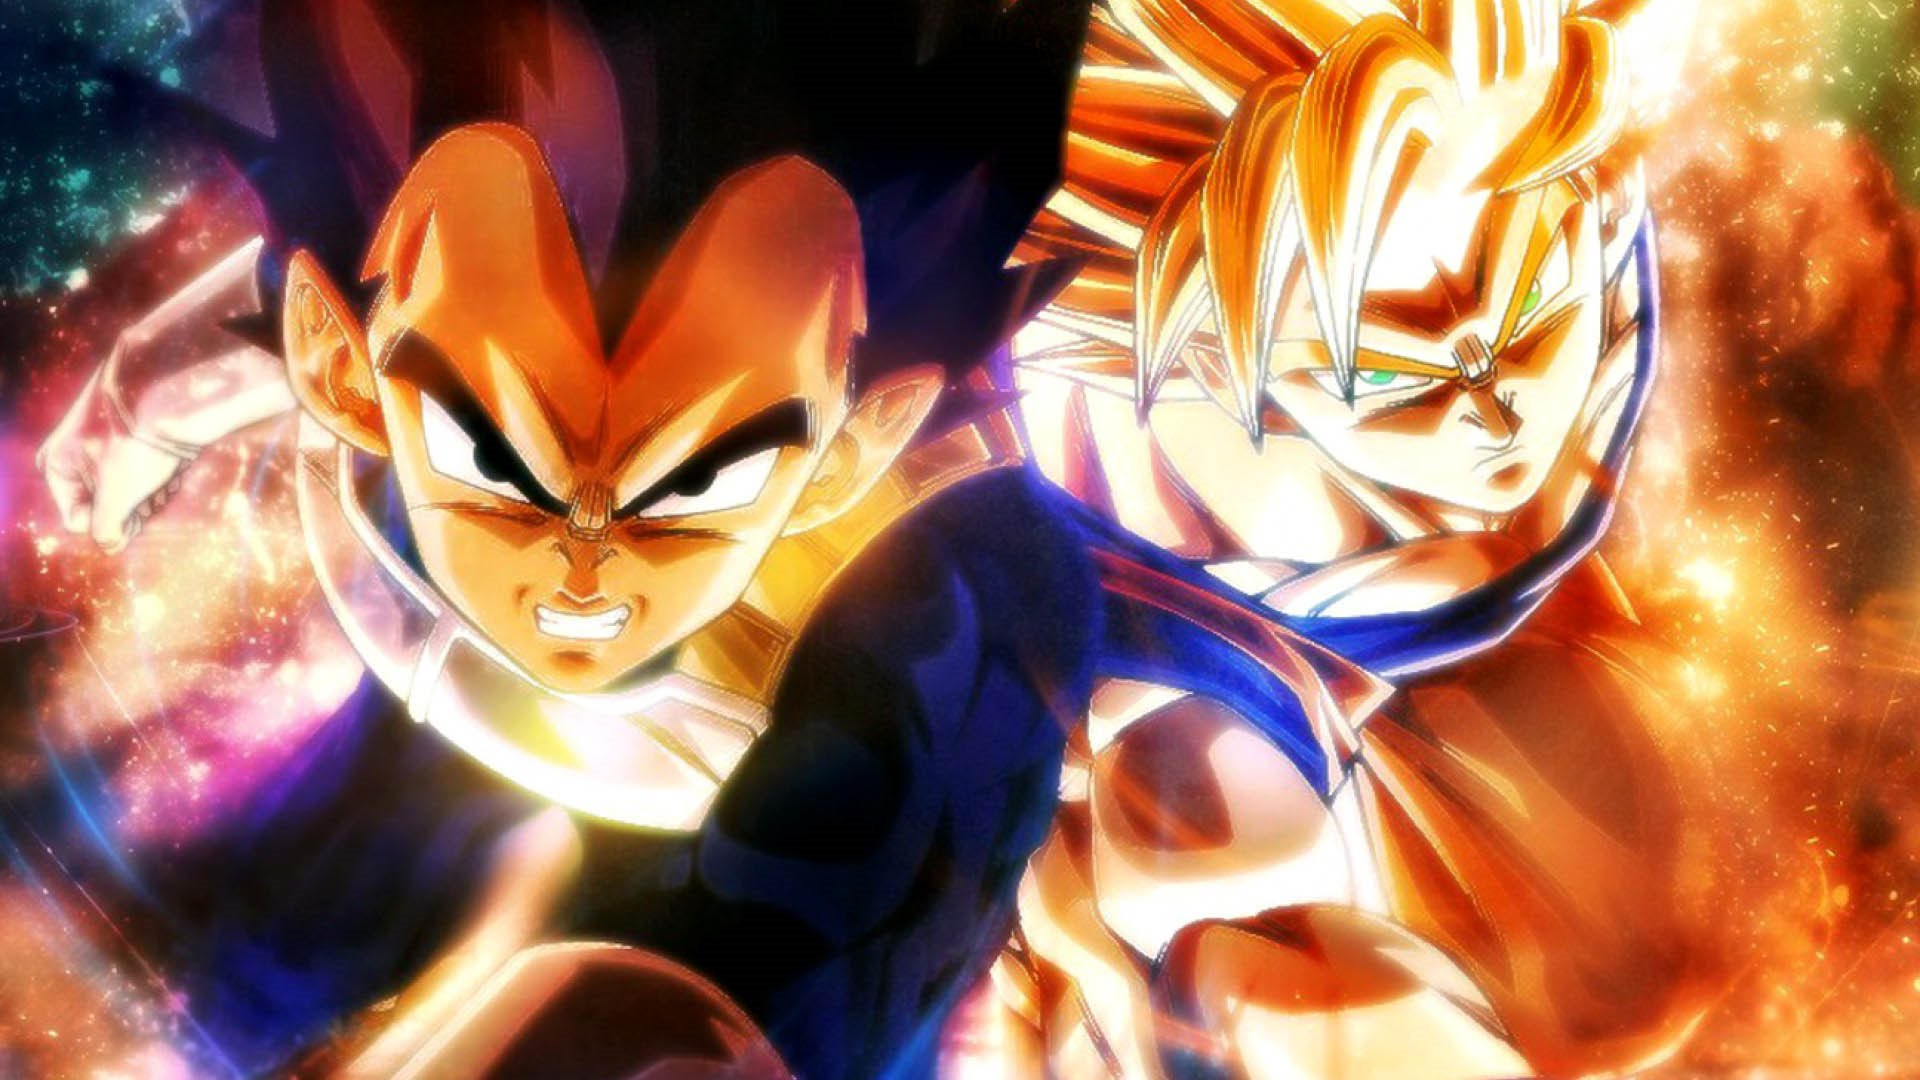 Vegeta And Goku Wallpaper Posted By Ethan Tremblay